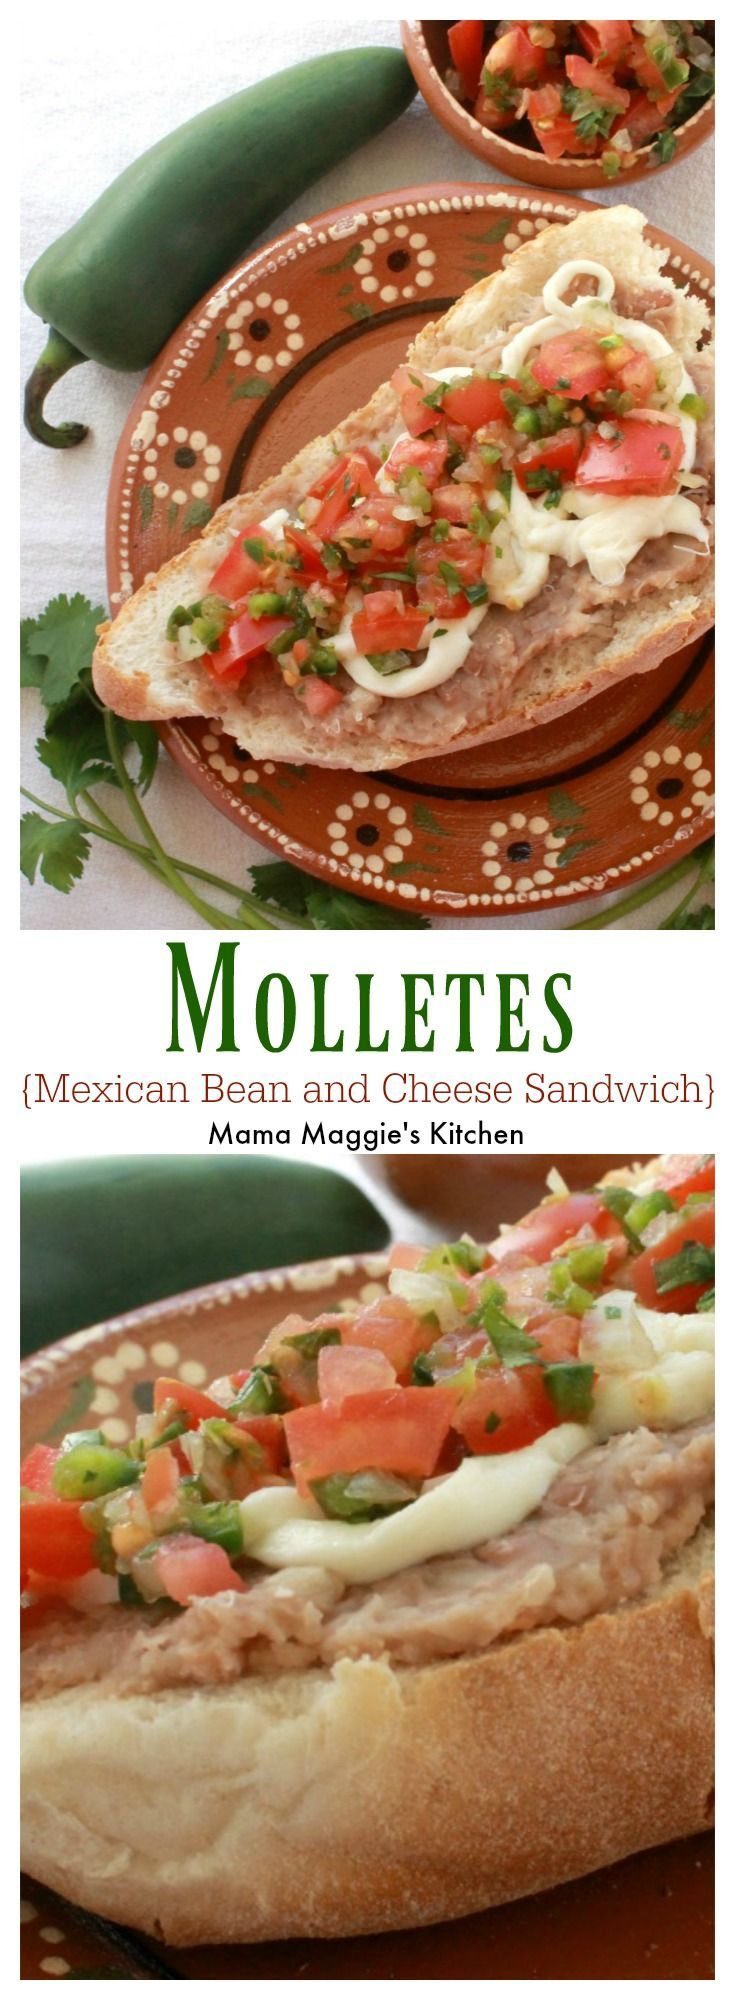 Molletes (or Open-Faced Mexican Sandwich) is a yummy breakfast idea or perfect as a quick afternoon snack. Mexican food doesn't come any easier than this! By Mama Maggie's Kitchen